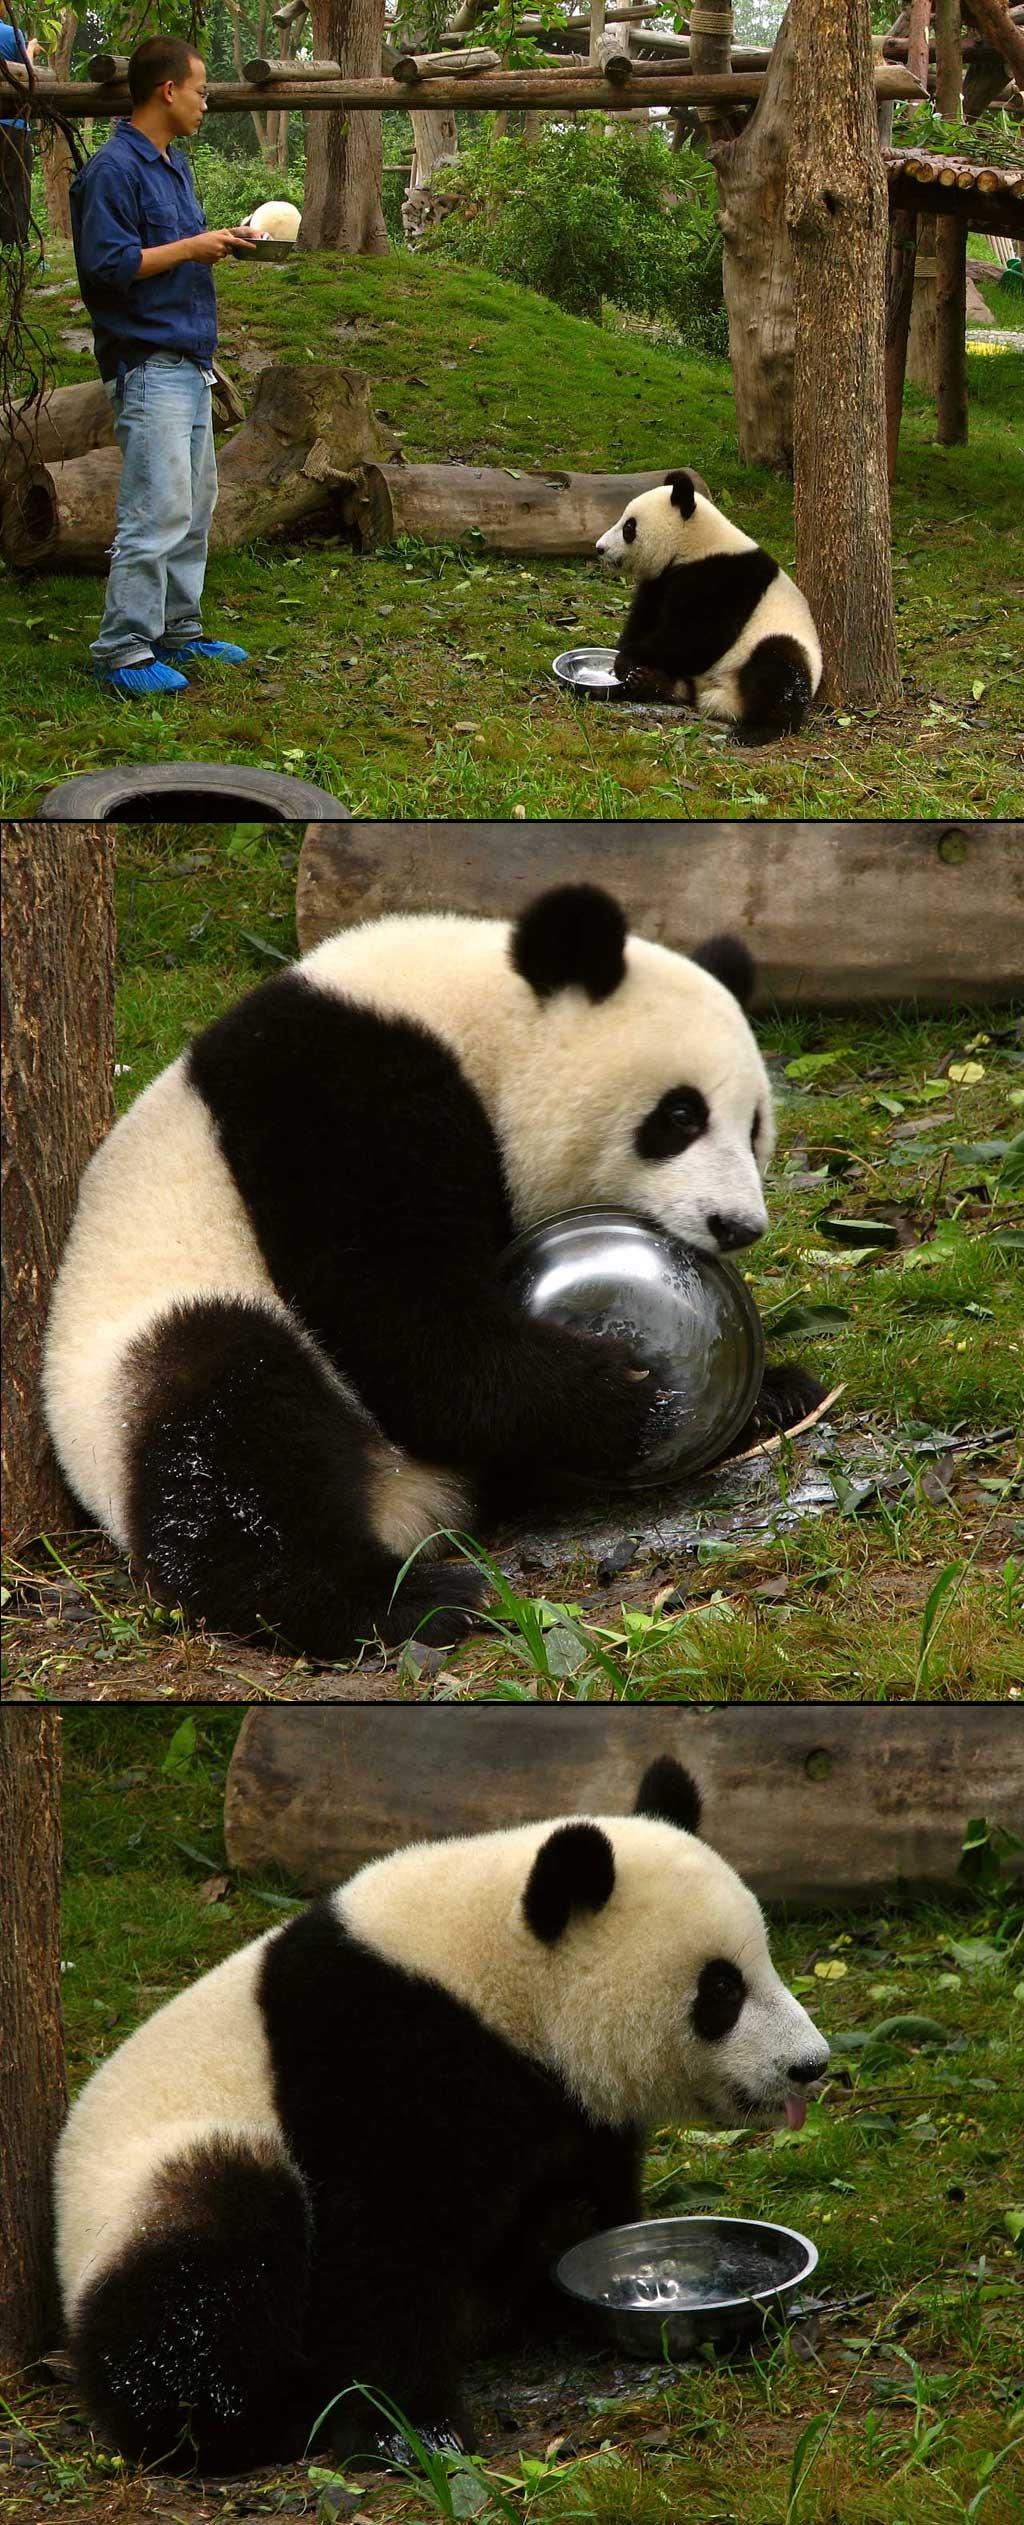 Panda Cubs by nelsone